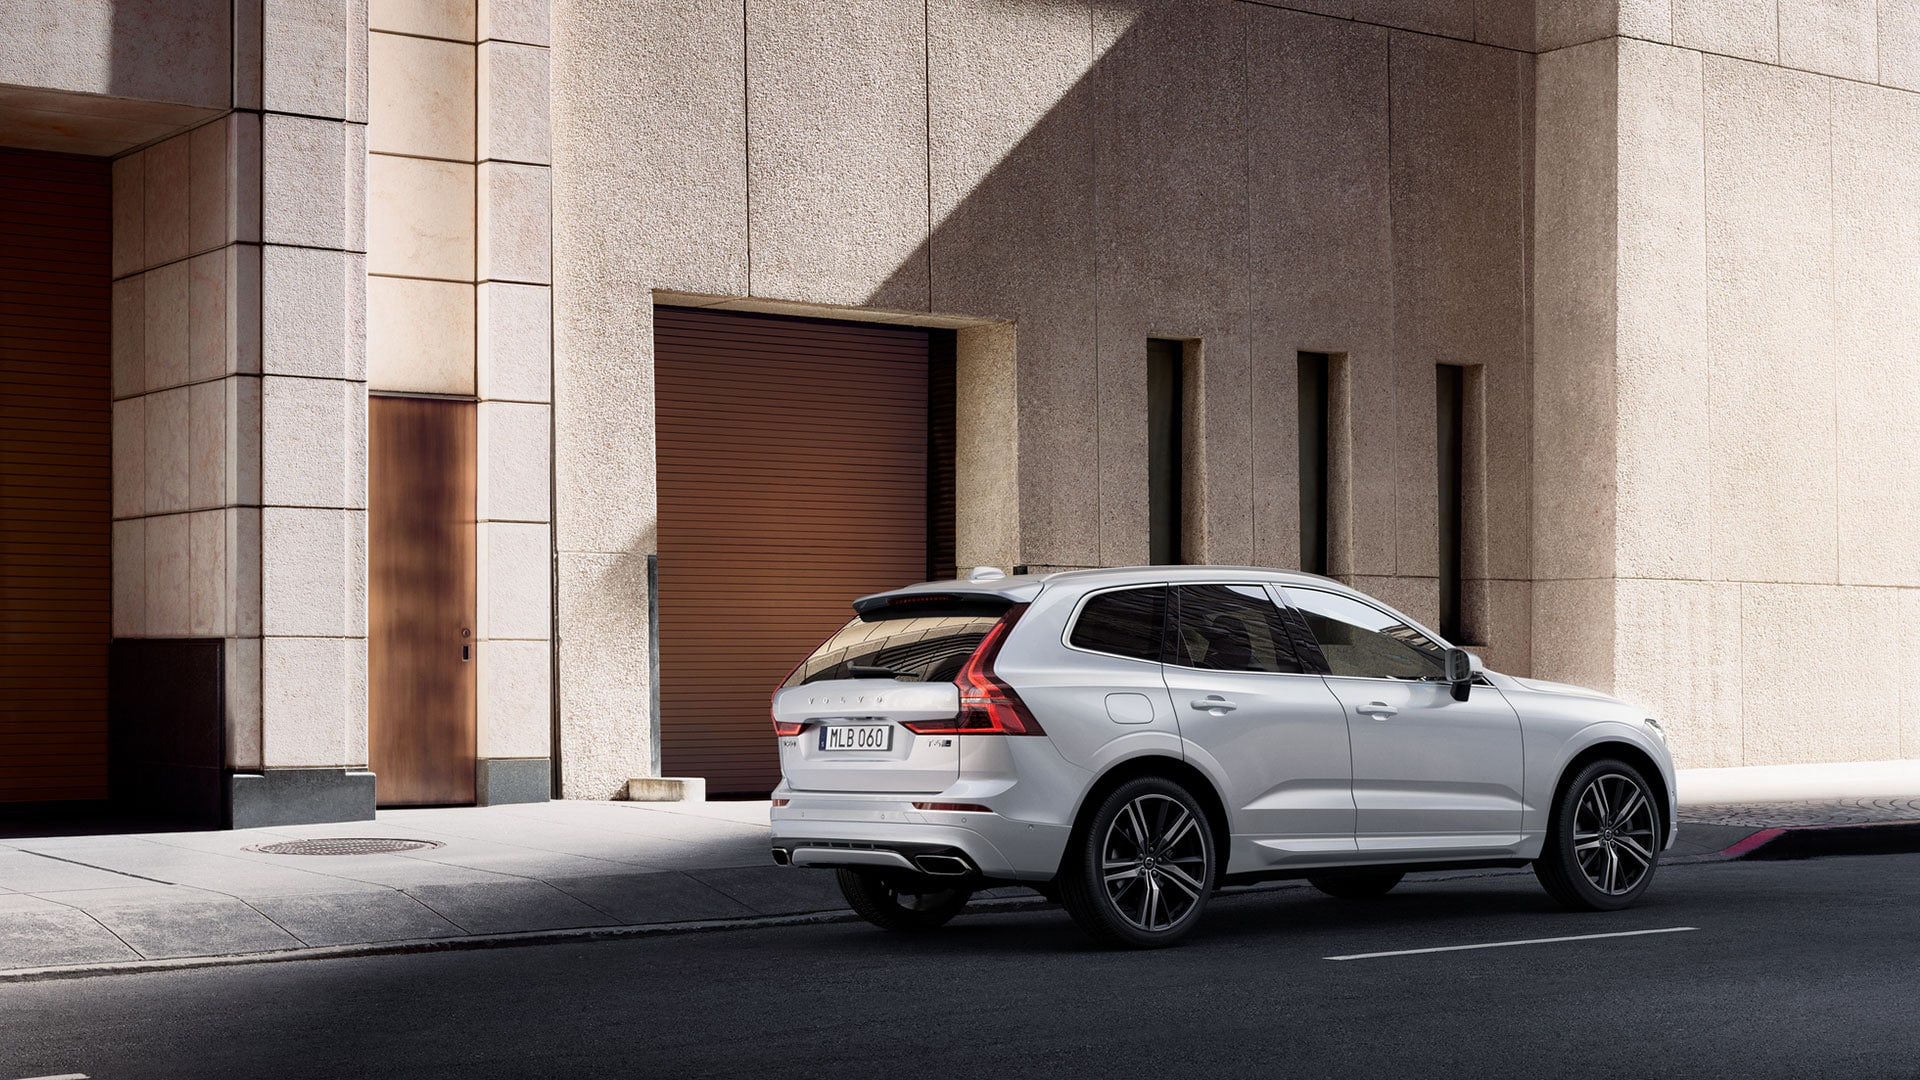 Exterior view of Volvo XC60